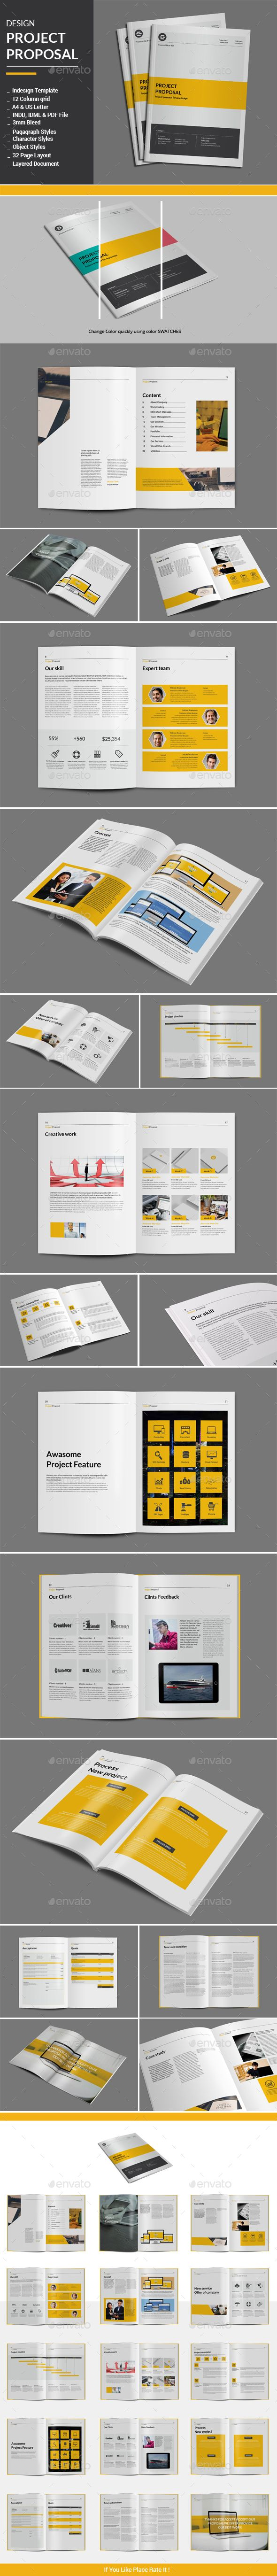 Design Project Proposal Template  Proposal Templates Project